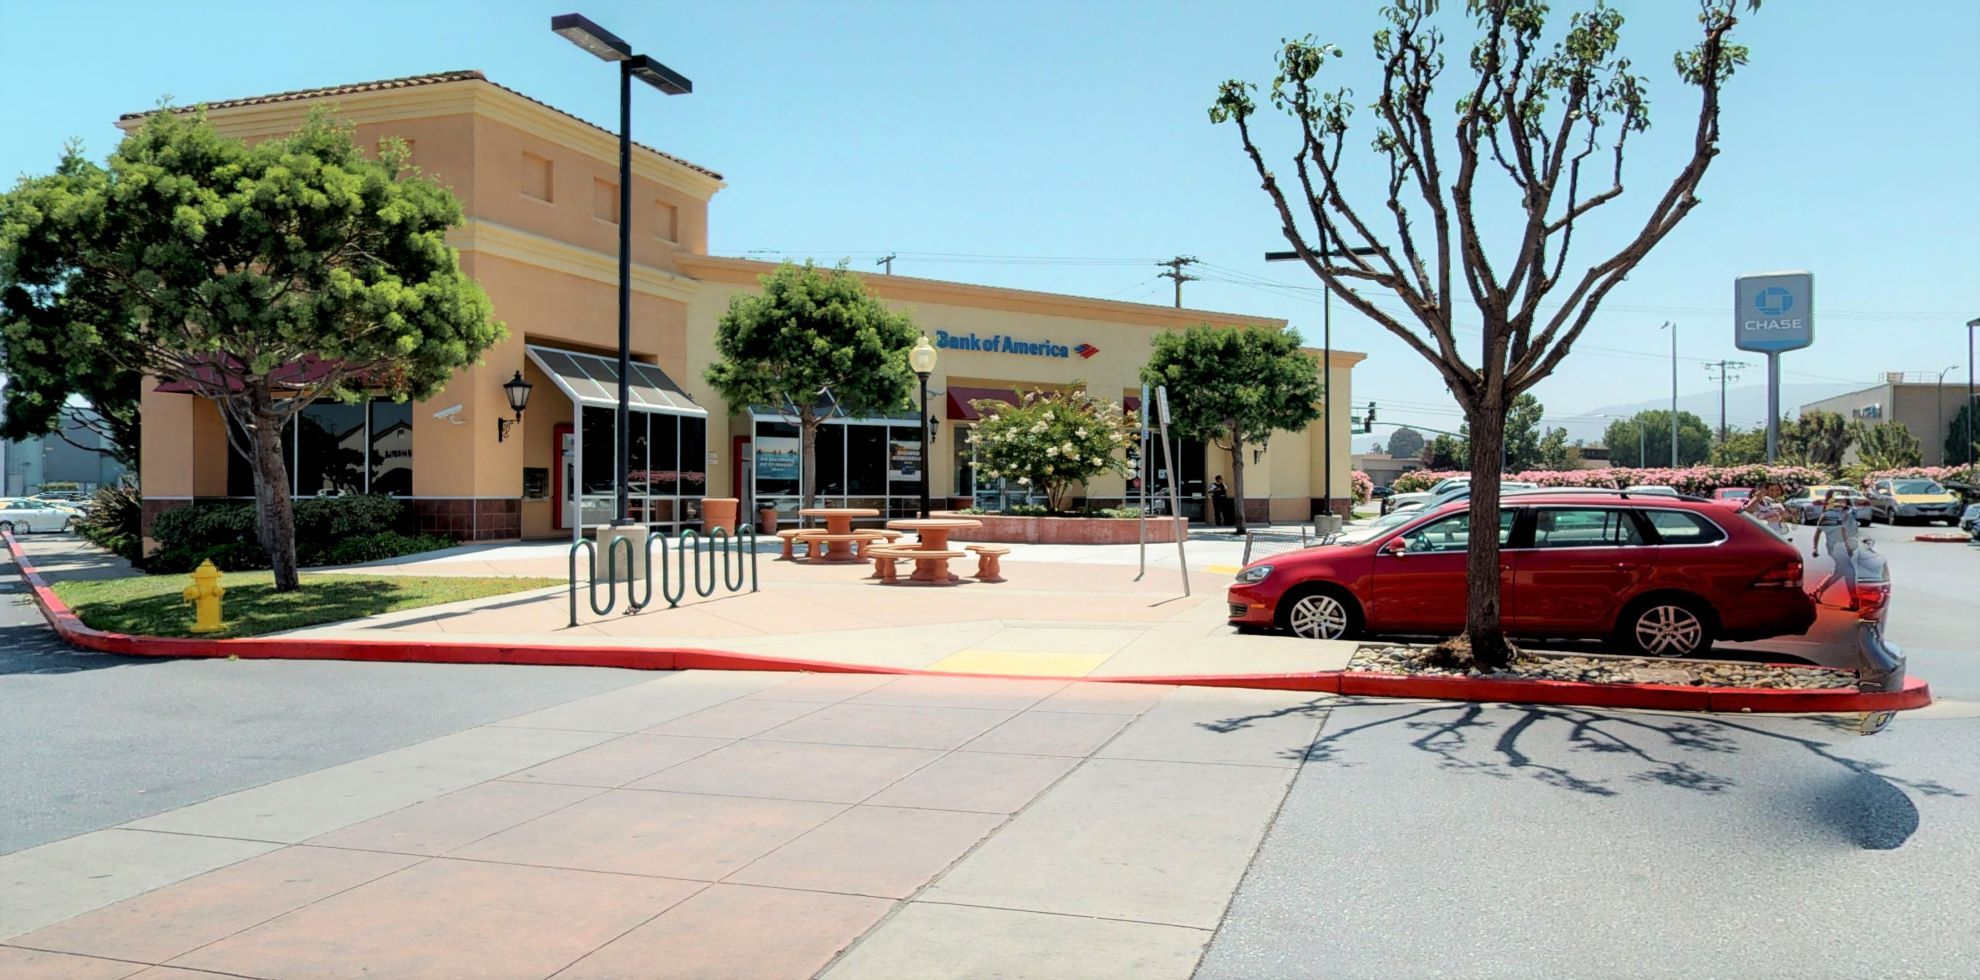 Bank of America financial center with walk-up ATM | 1695 Saratoga Ave, San Jose, CA 95129